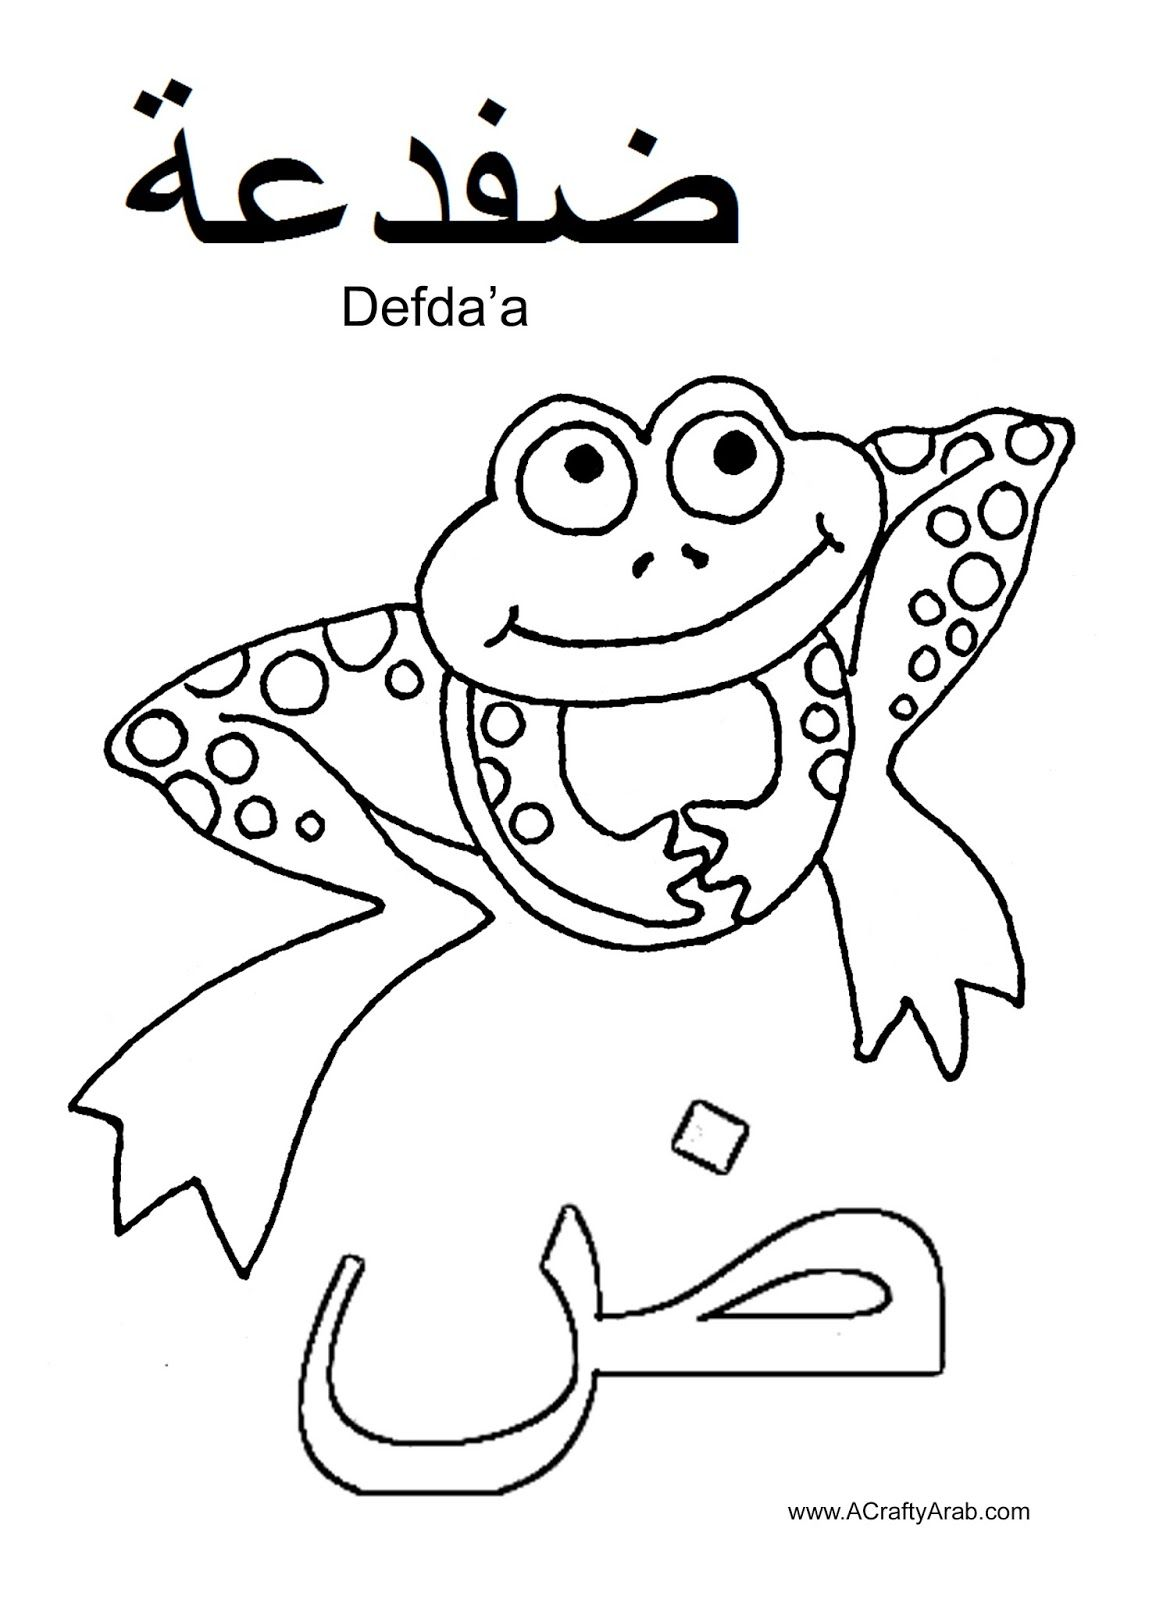 Uncategorized Arabic Coloring Pages printable pages of the arabic alphabet to color a crafty arab coloring dhad is for defda